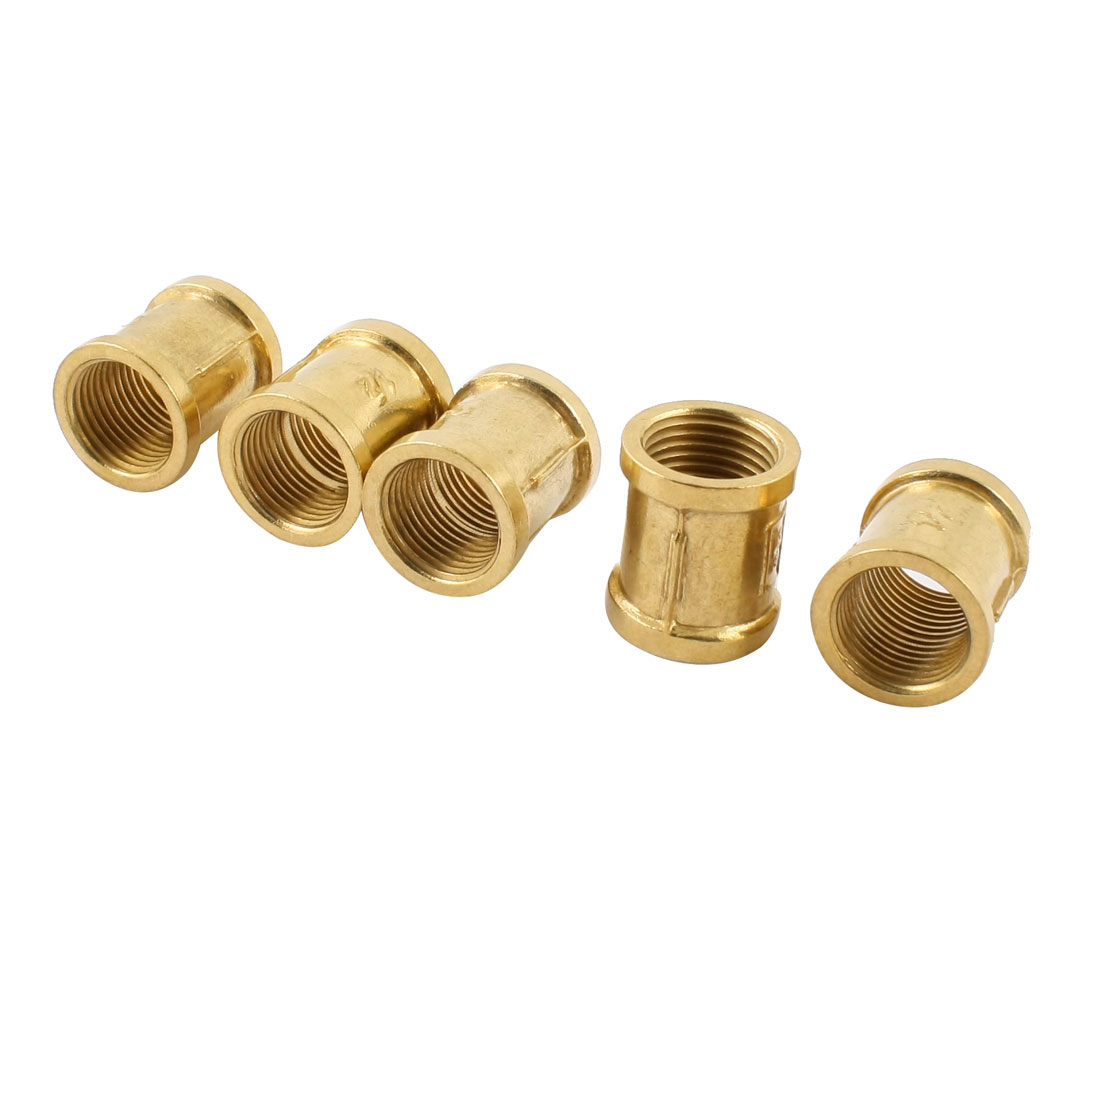 5pcs Gold Tone Brass 1/2PT Female to Female Pipe Fittings Connector